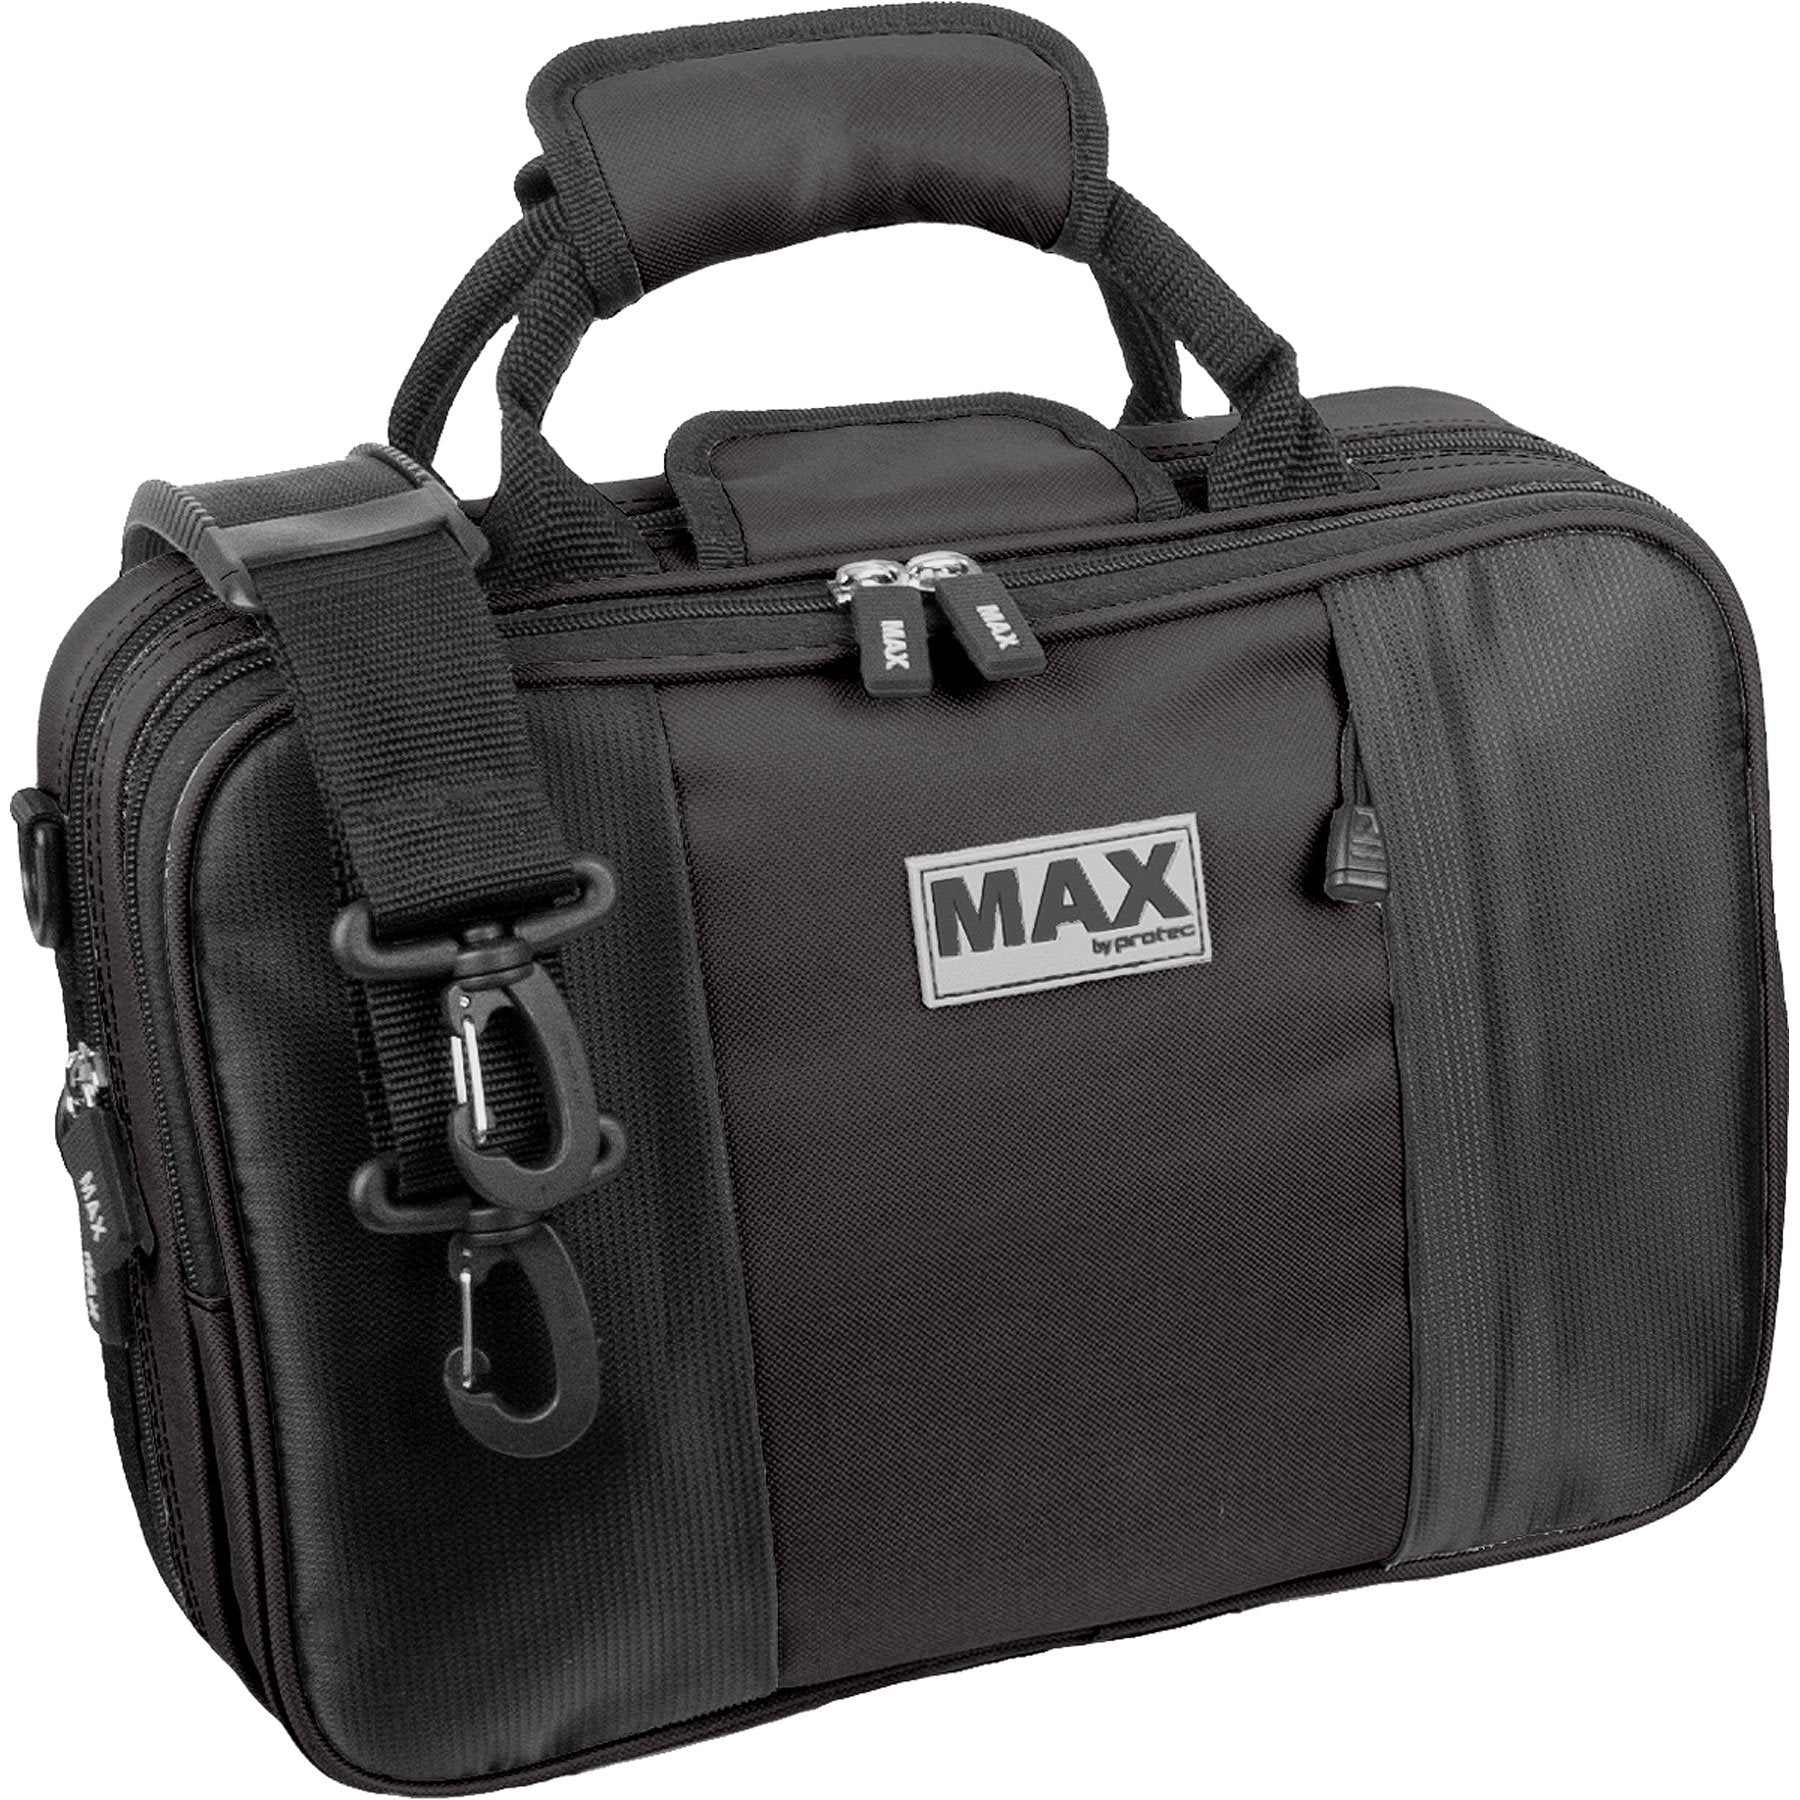 Protec - Oboe MAX Case-Accessories-Protec-Music Elements